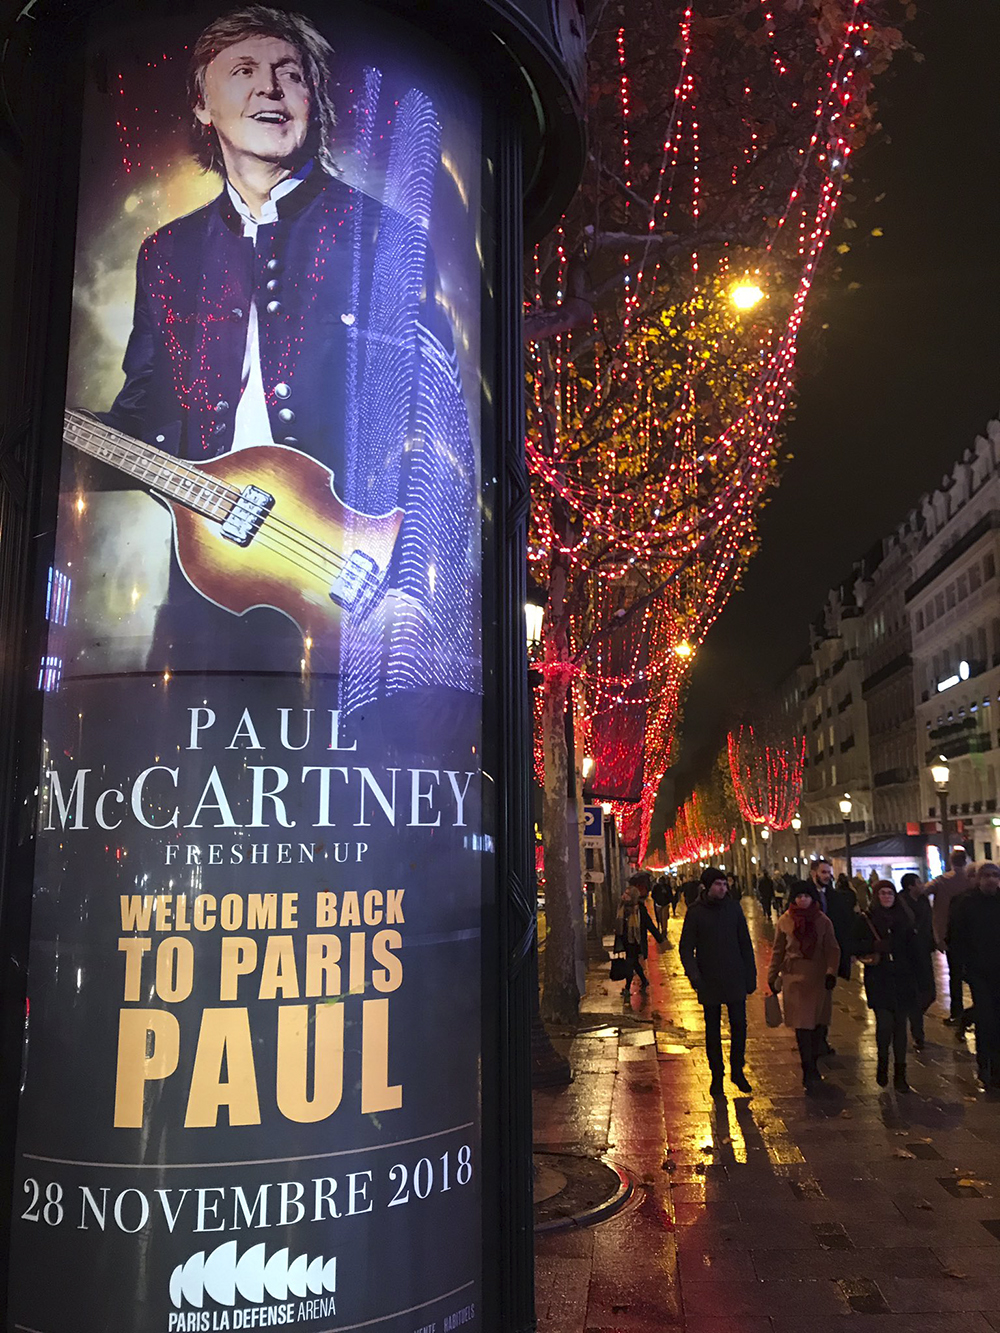 Concerto a Parigi di Paul McCartney